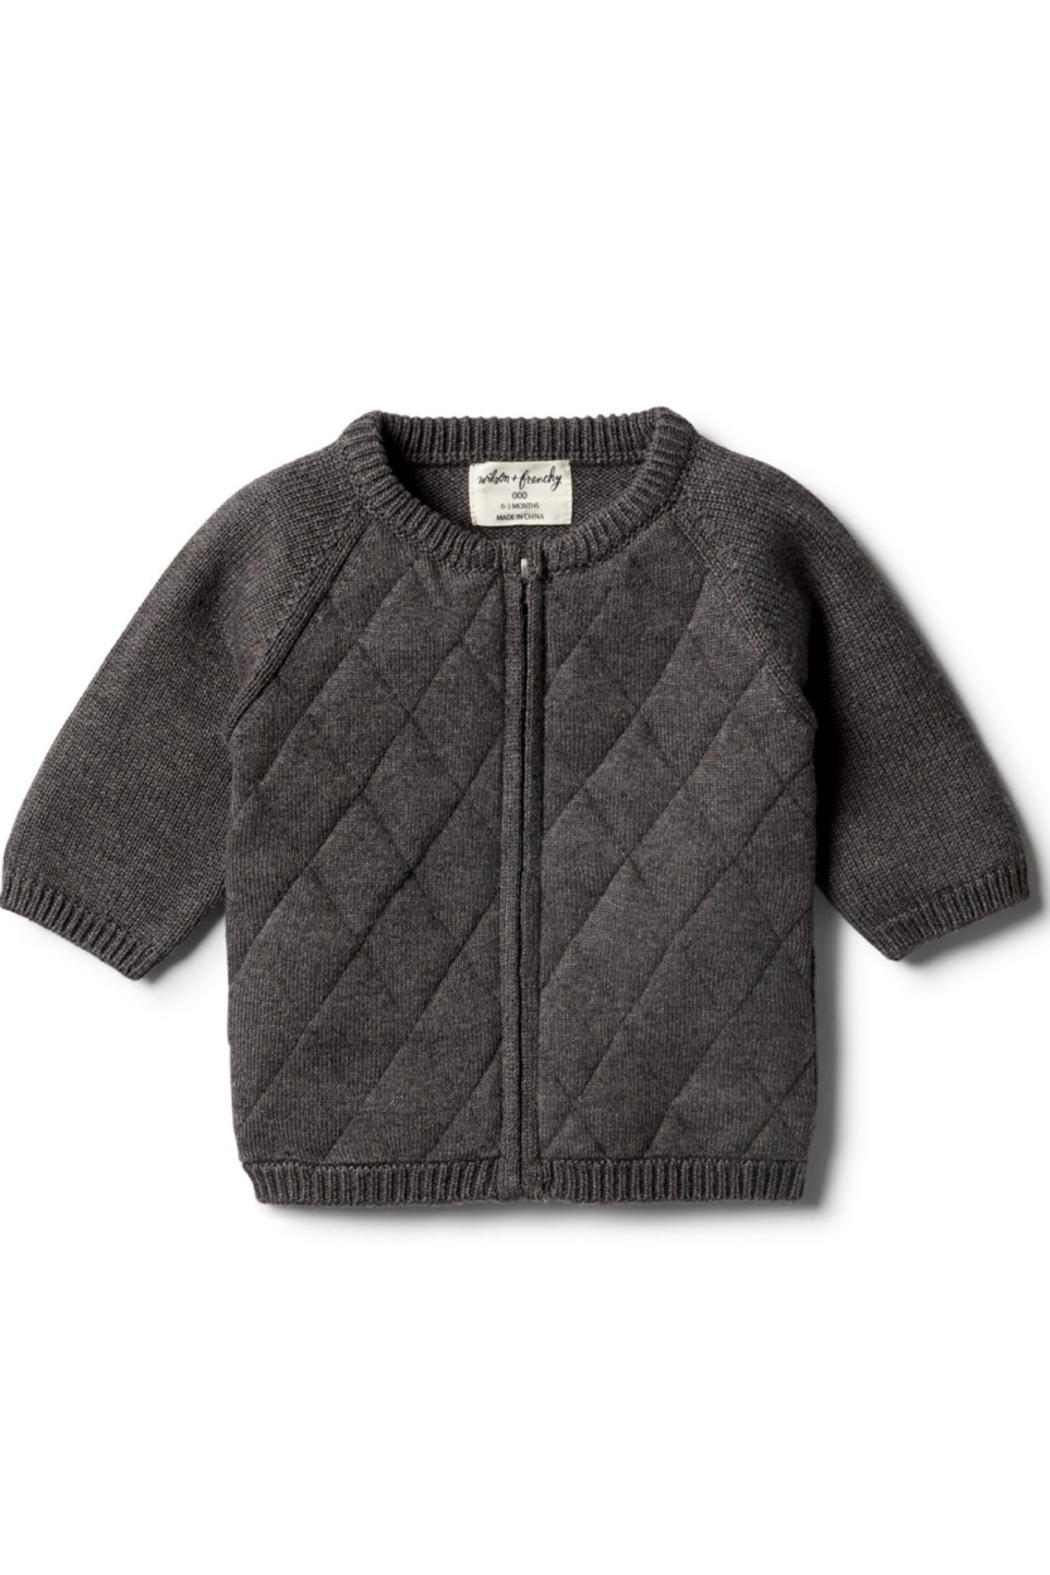 Wilson and Frenchy Knitted Zip Up Cardigan - Main Image